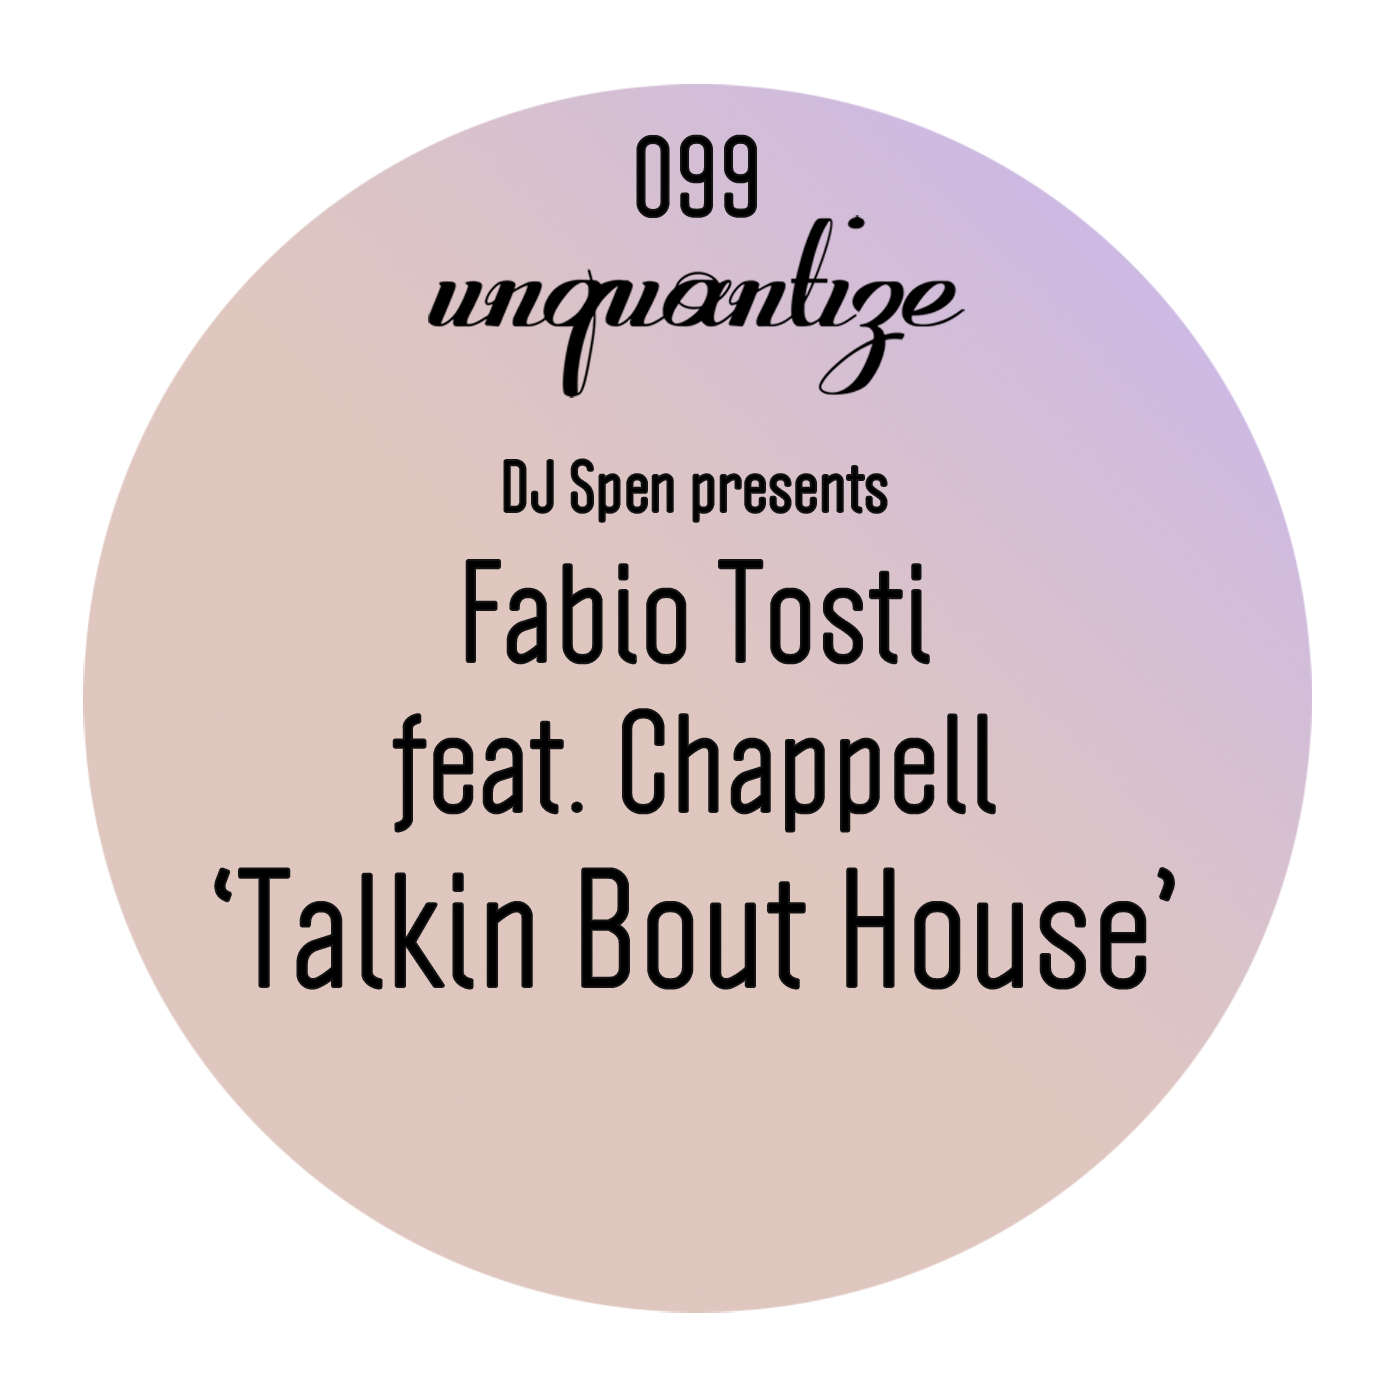 unqtz099_-fabio-tosti-chappell_talking-bout-house